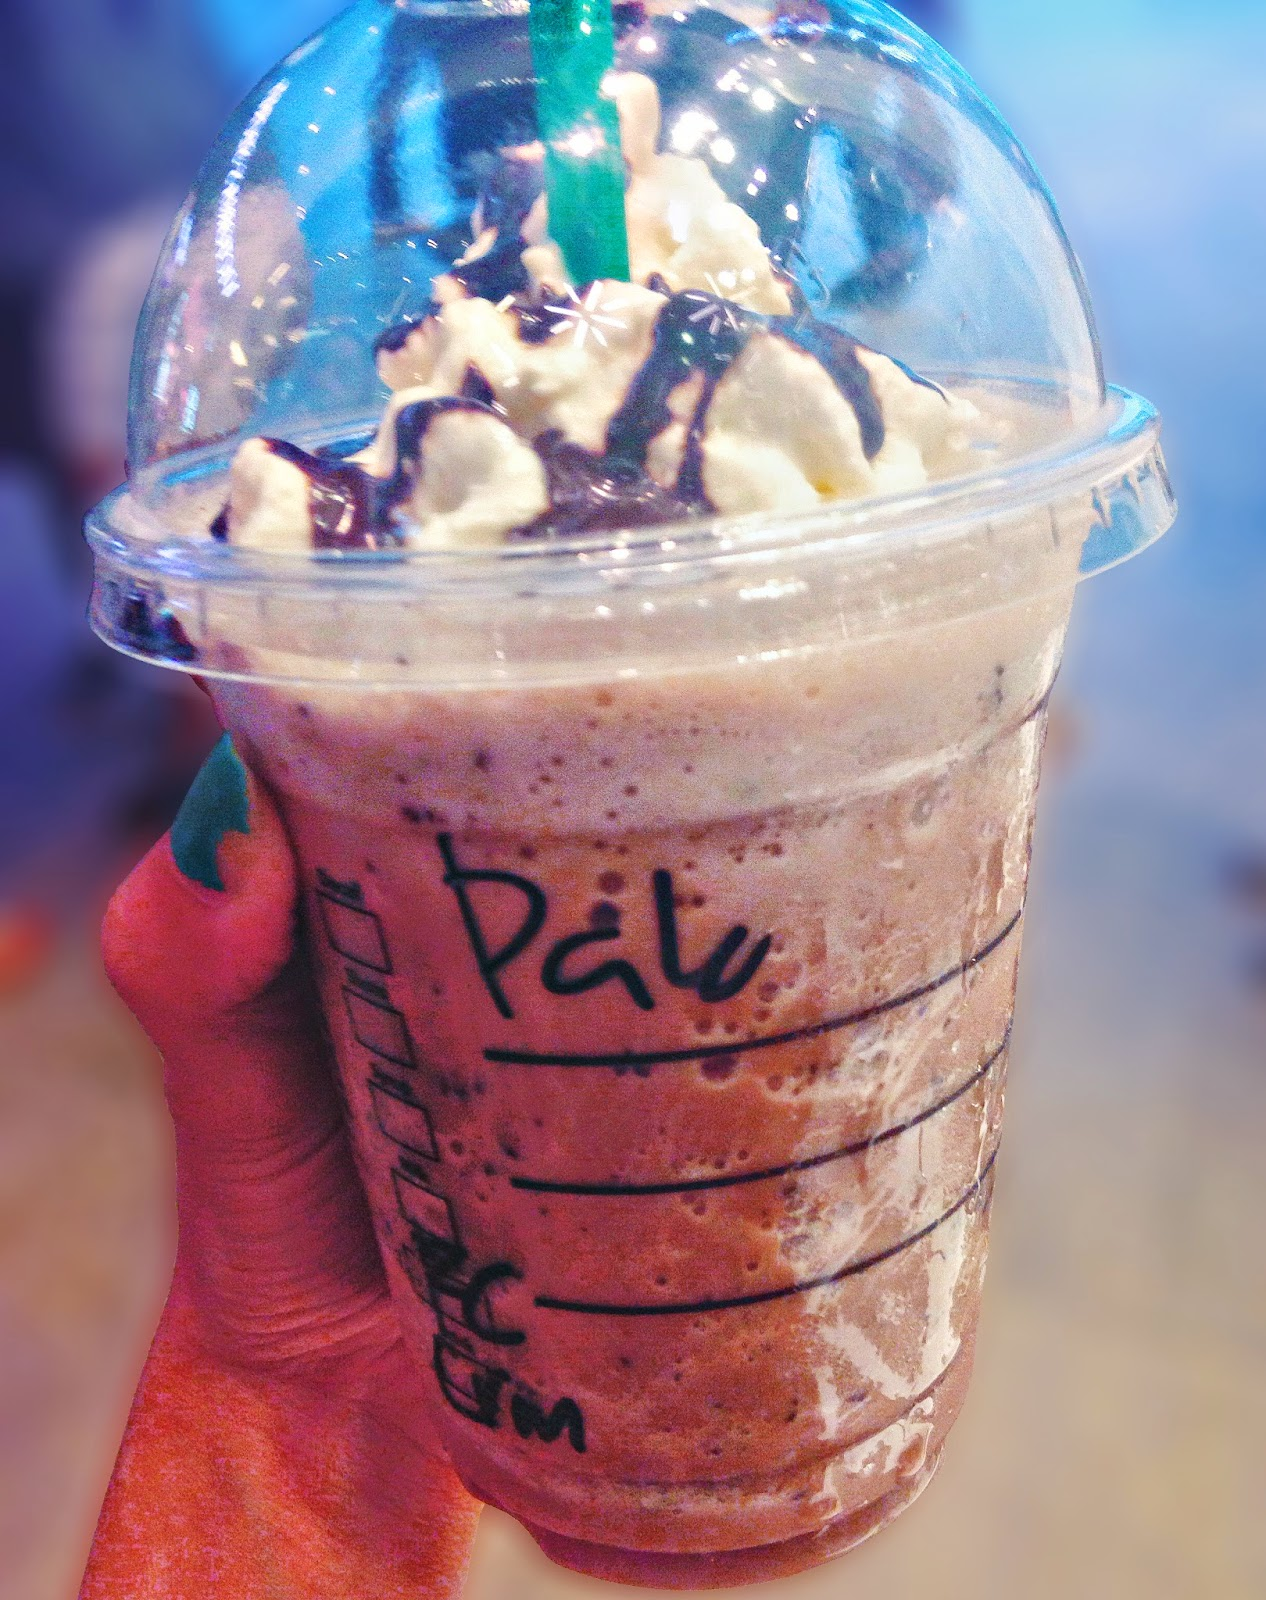 Starbucks Just Can T My Name Right Pekyj 183 Travel Beauty Food Blog Singapore